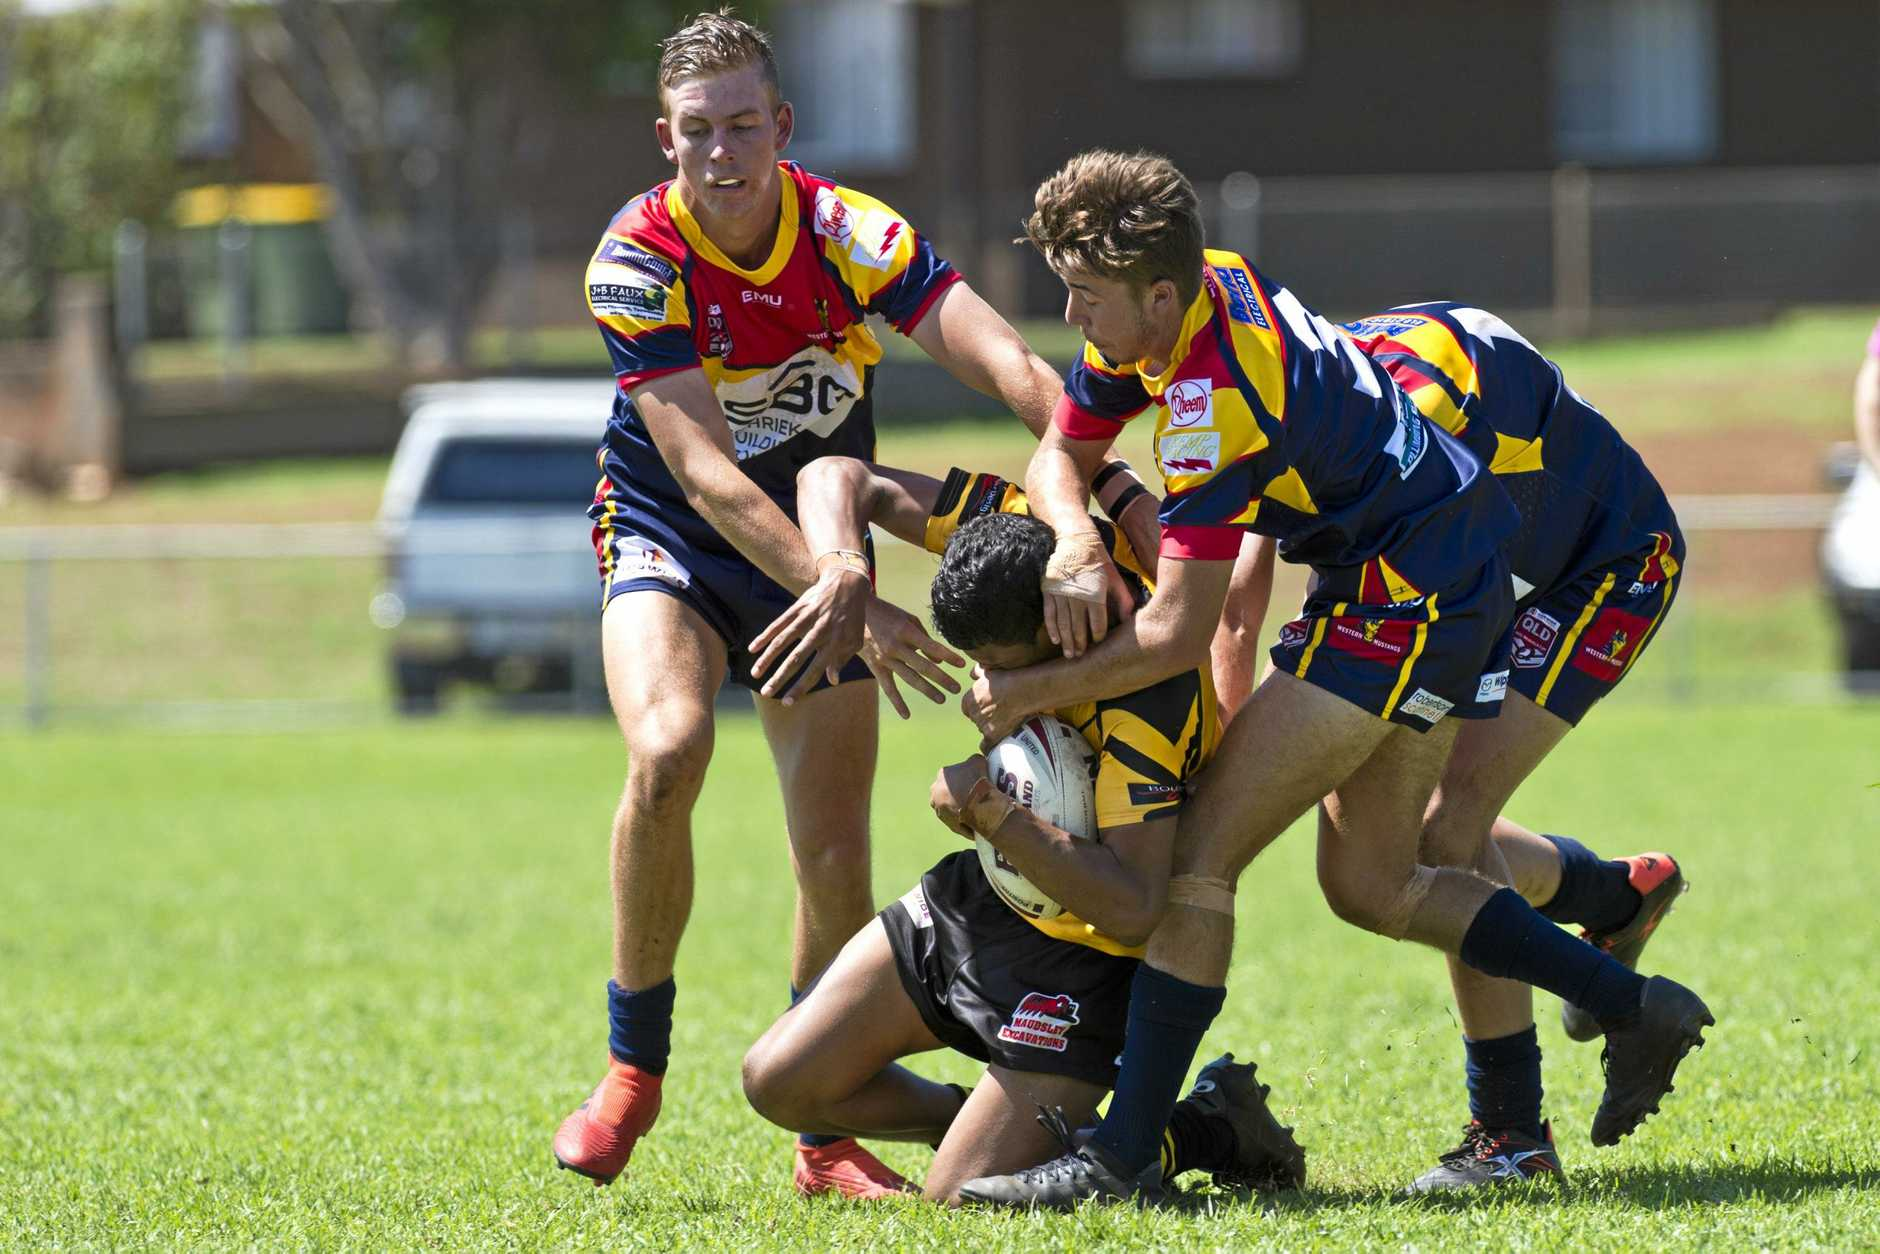 HARD HITTING: Jordan Lipp (left) and Oliver Moy bring down a Sunshine Coast Falcon during Sunday's Mal Meninga Cup game.